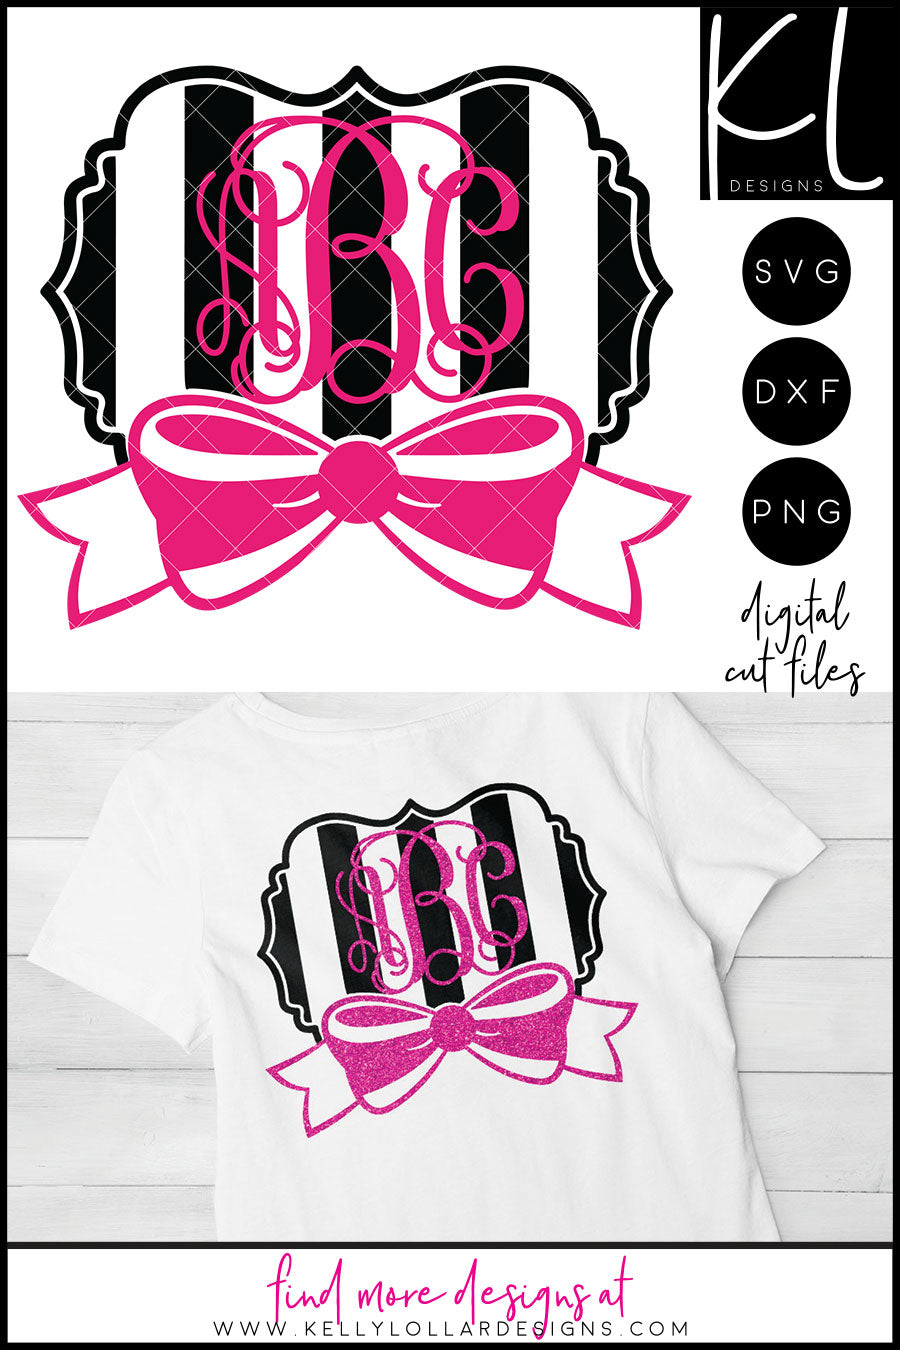 Striped Monogram with Bow | SVG DXF EPS PNG Cut Files Statement Monogram Frame with Bow and Wide Stripe Background for Vine Monograms or Names | SVG DXF EPS PNG Cut Files Get ready for an adorable new monogram with this